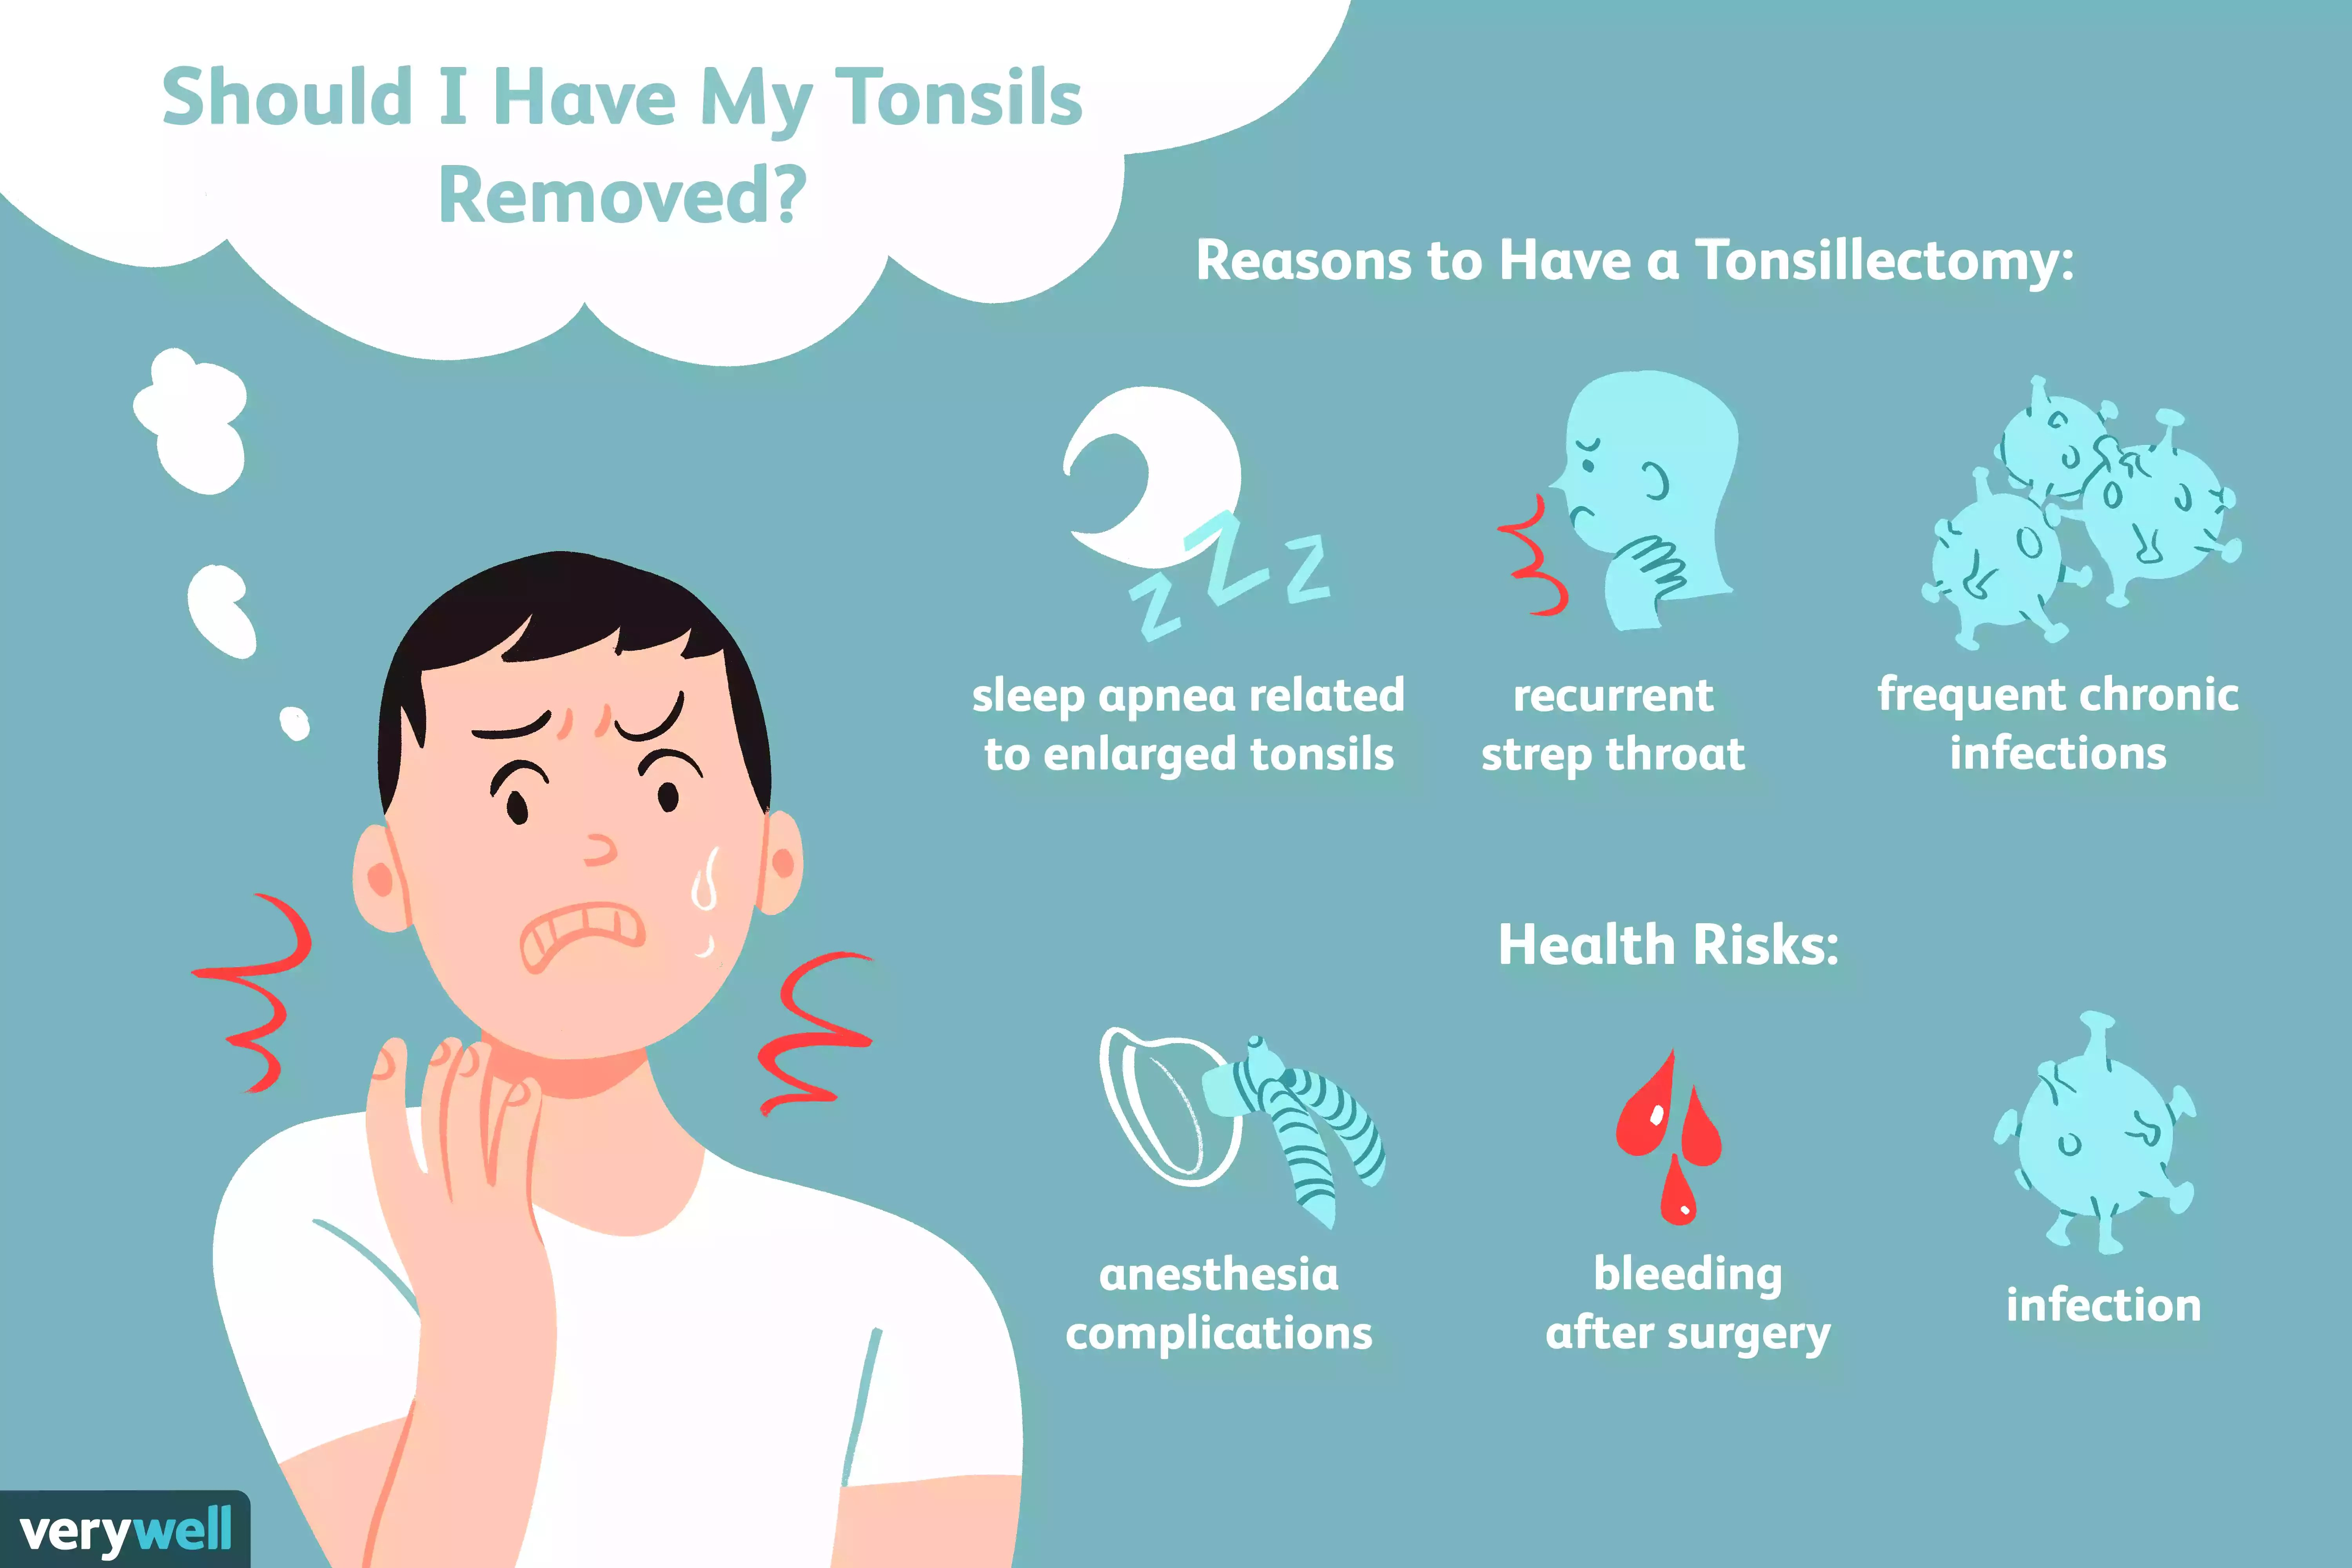 should i have my tonsils removed